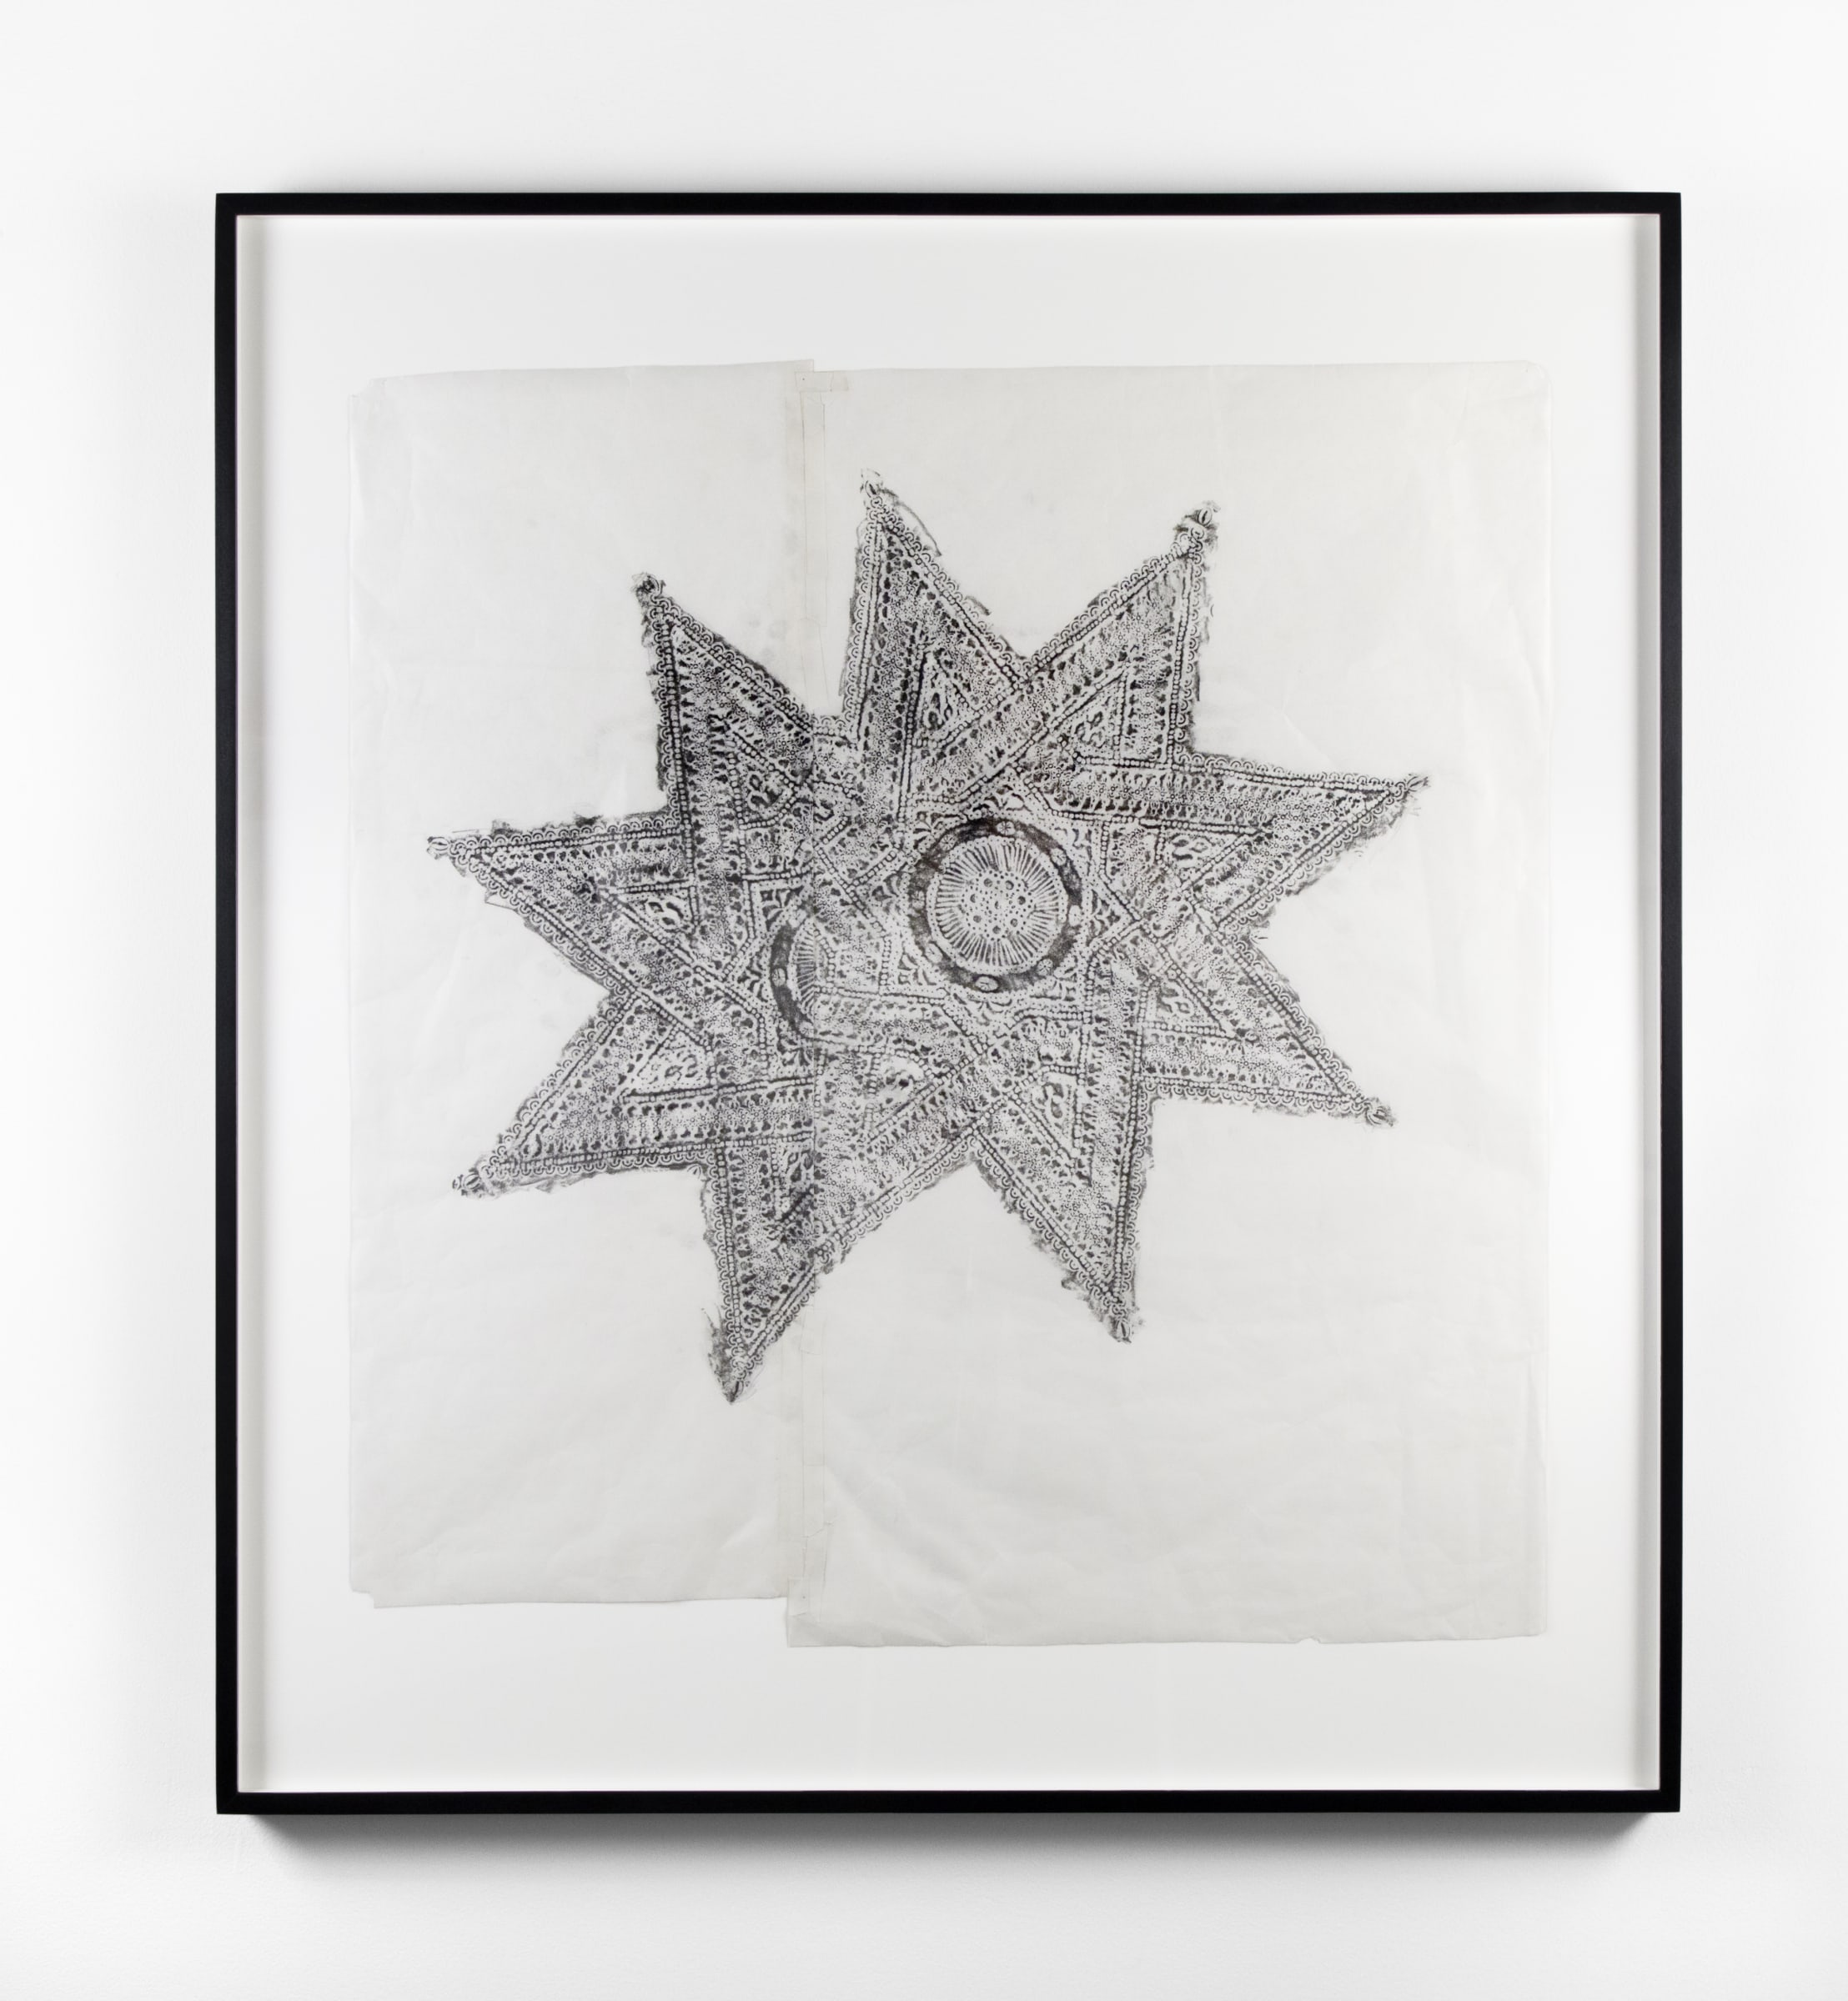 <span class=&#34;link fancybox-details-link&#34;><a href=&#34;/exhibitions/9/works/artworks14/&#34;>View Detail Page</a></span><div class=&#34;medium&#34;>Graphite on shoji paper, with artists tape, framed</div> <div class=&#34;dimensions&#34;>38 1/8 x 34 in<br /> 96.8 x 86.4 cm</div>